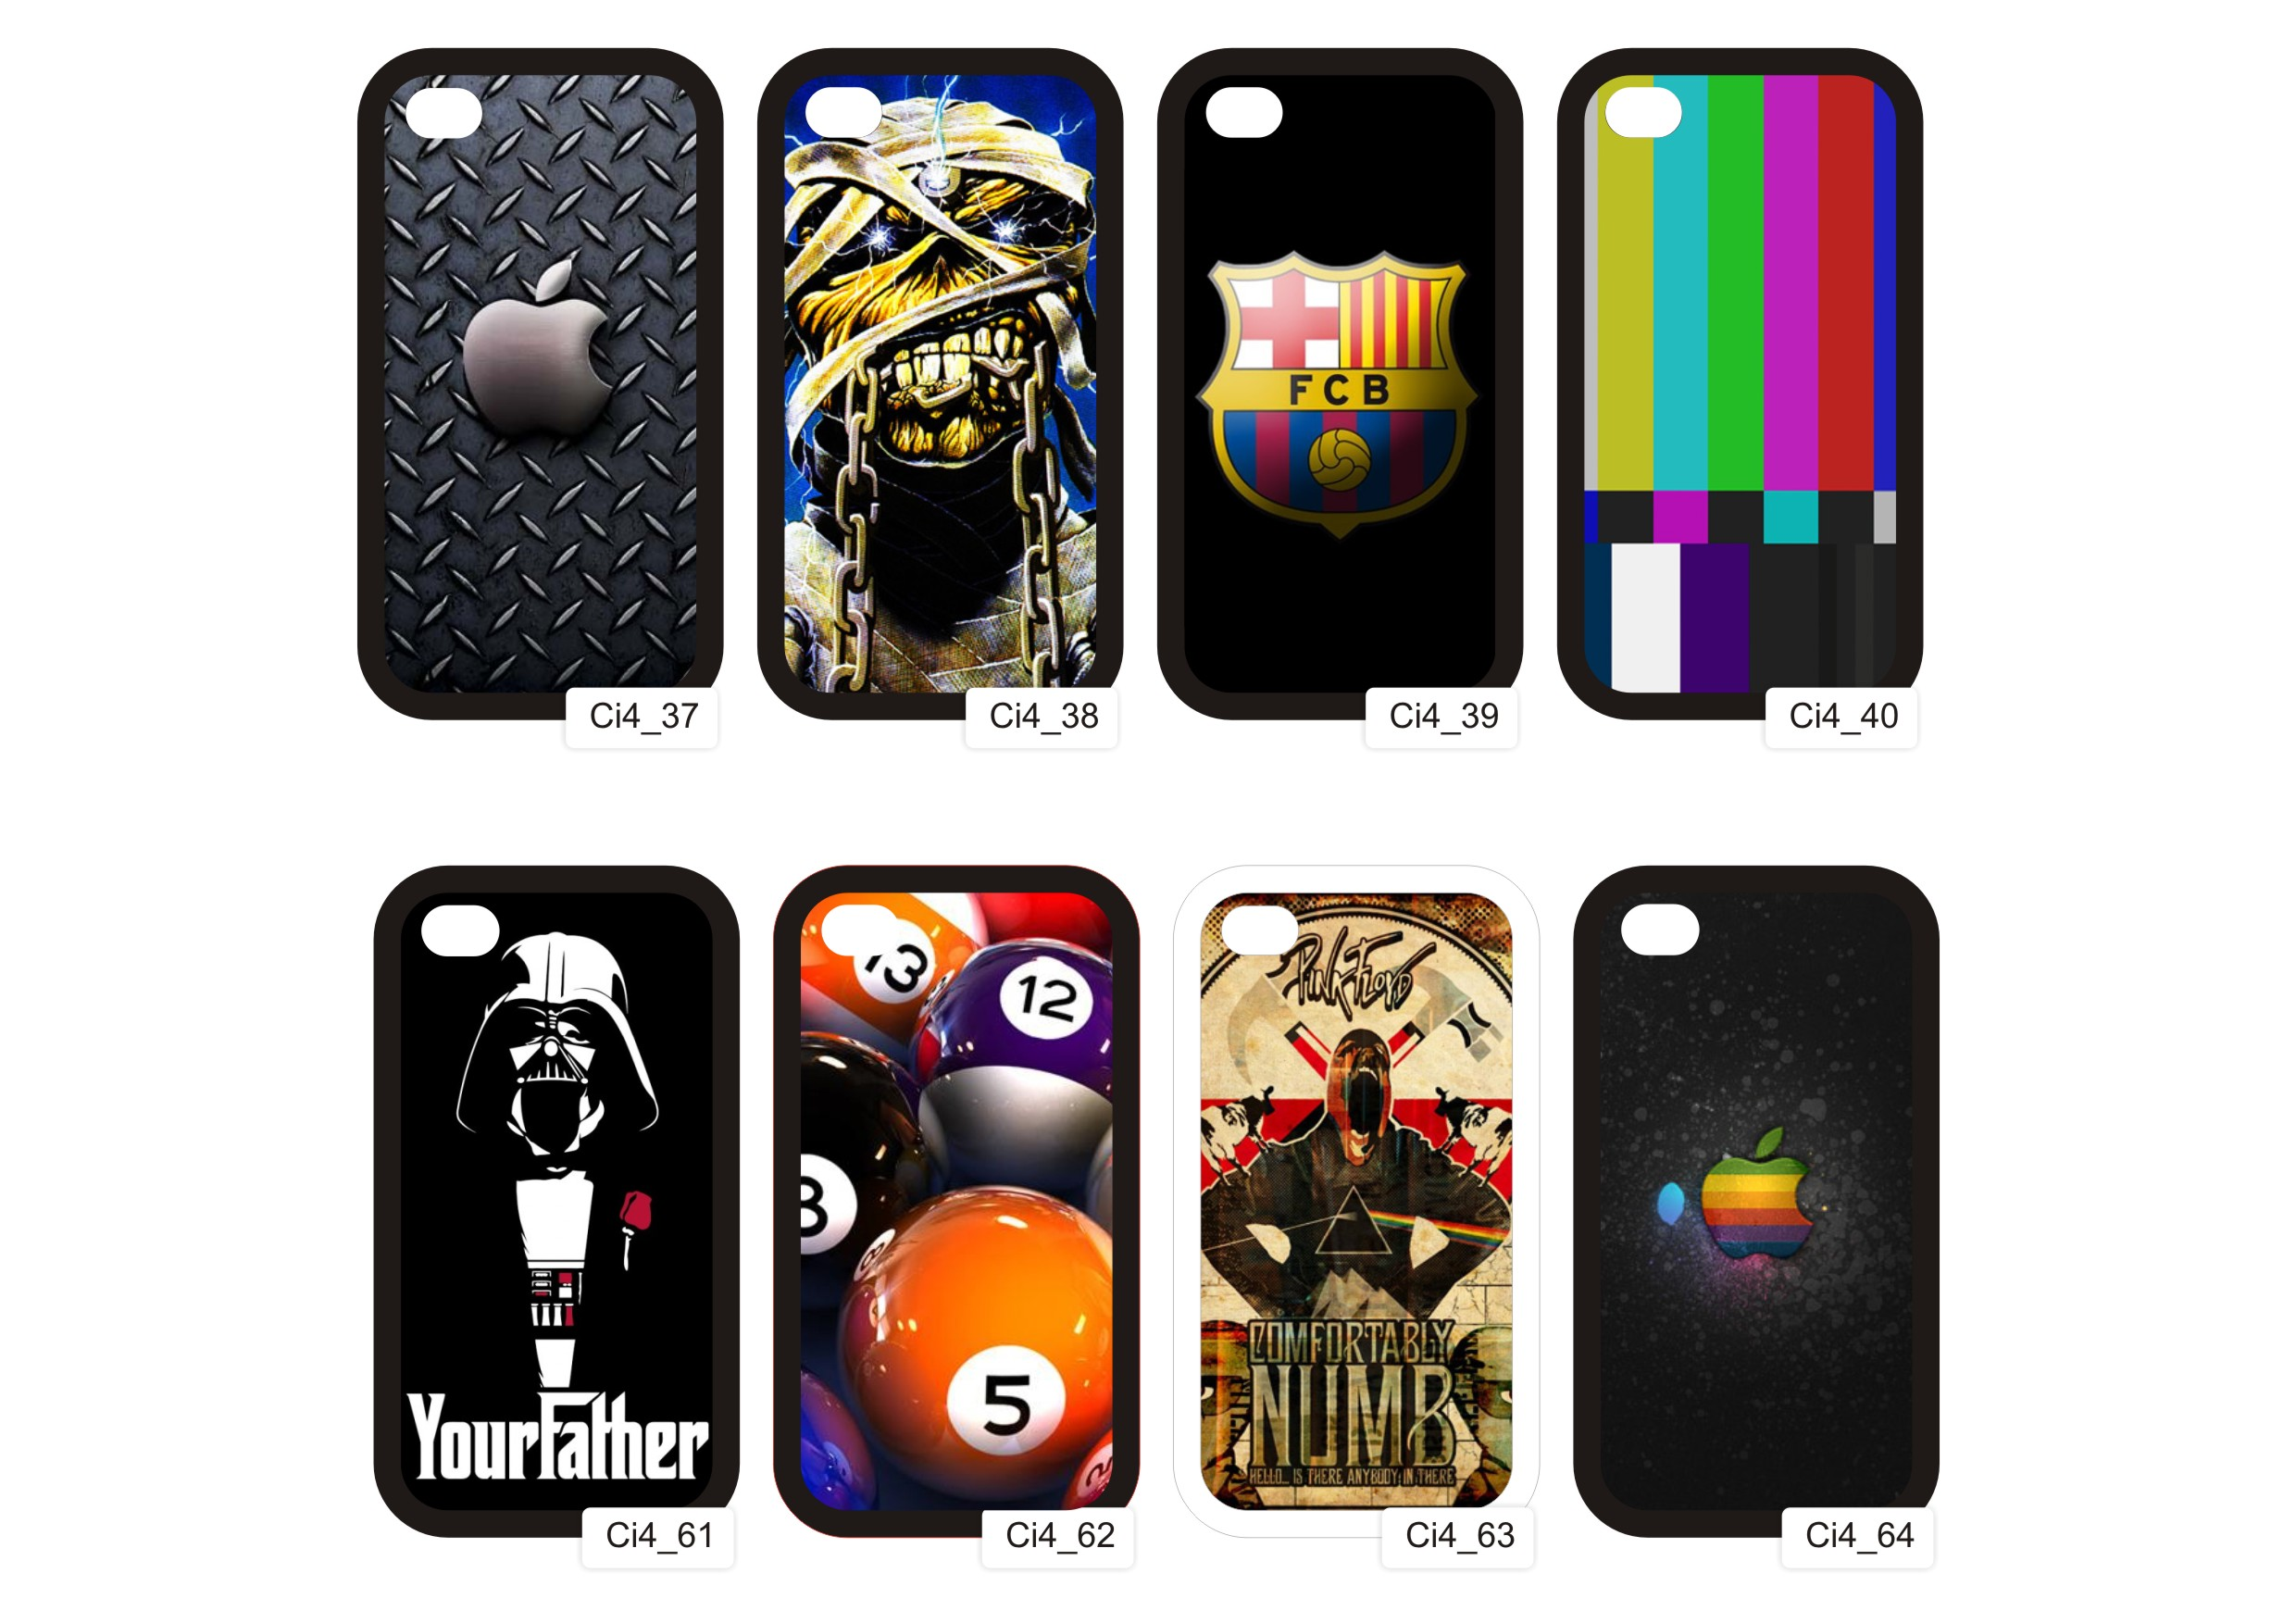 promotion in 4p galaxy s3 Samsung galaxy s3, note 2 accessories: free cases included in promotion, but short supplies anger users.